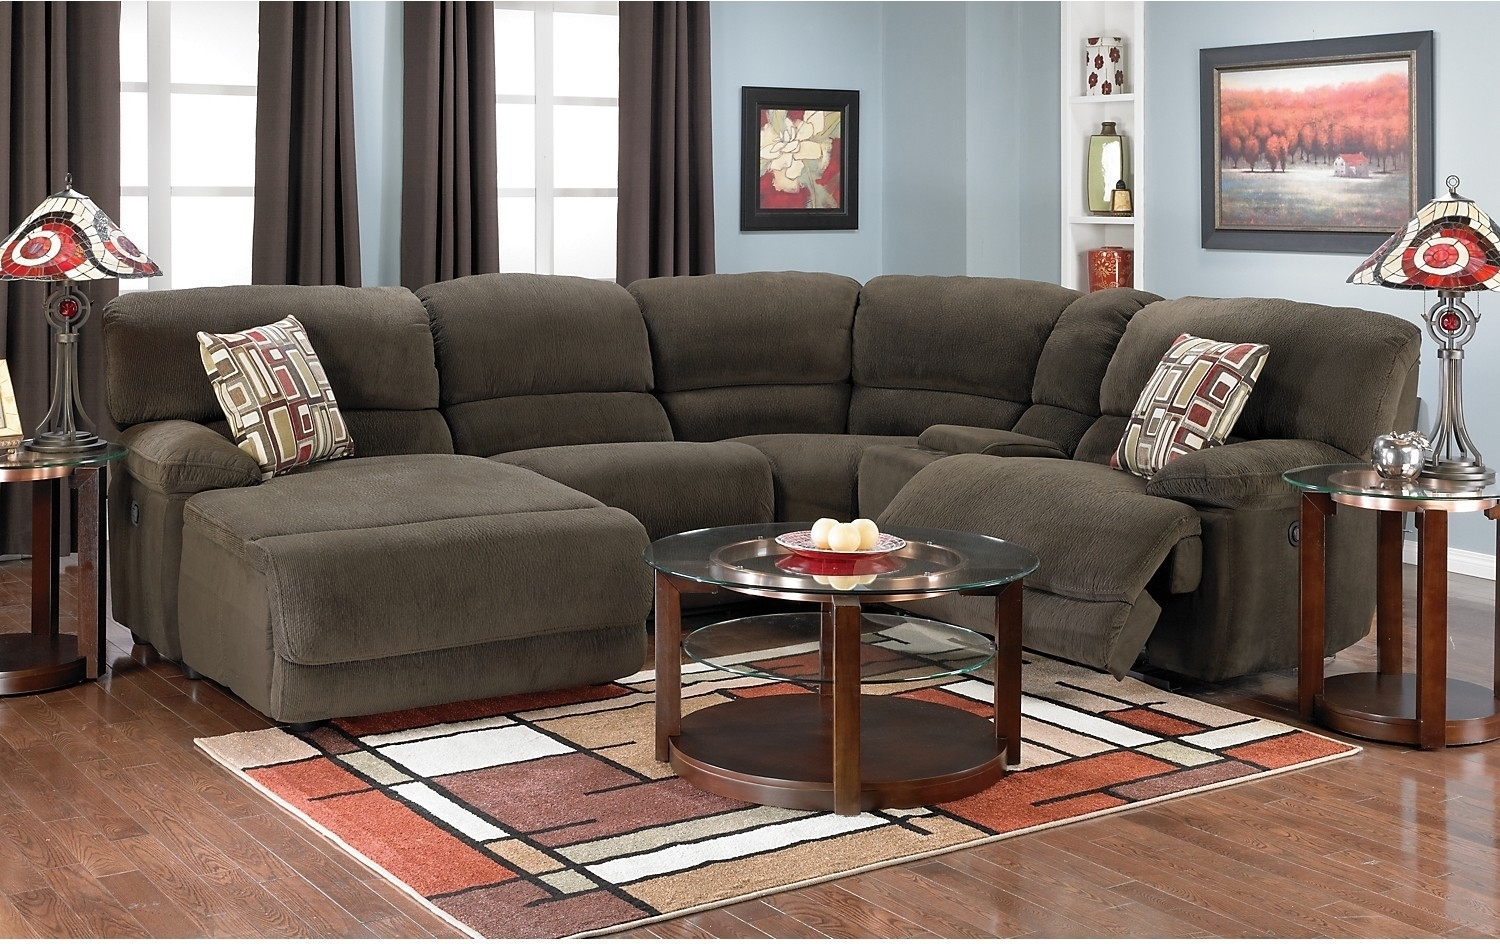 Devon Devon 5 Piece Sectional With Chaise And Sleeper Sofa in Sectional Sofas At The Brick (Image 7 of 15)